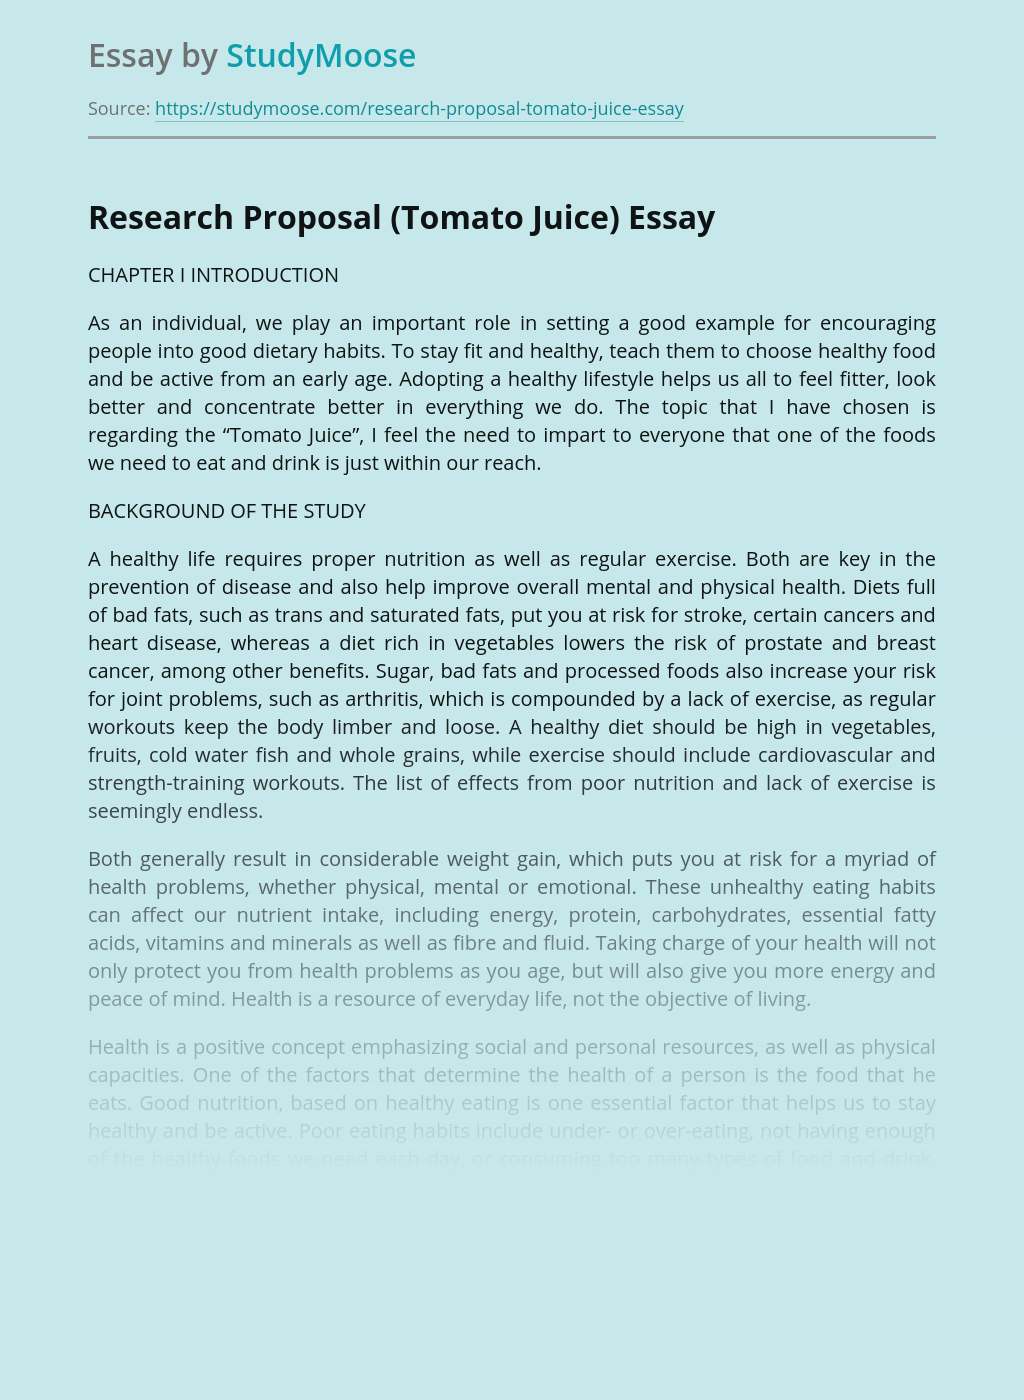 Research Proposal (Tomato Juice)